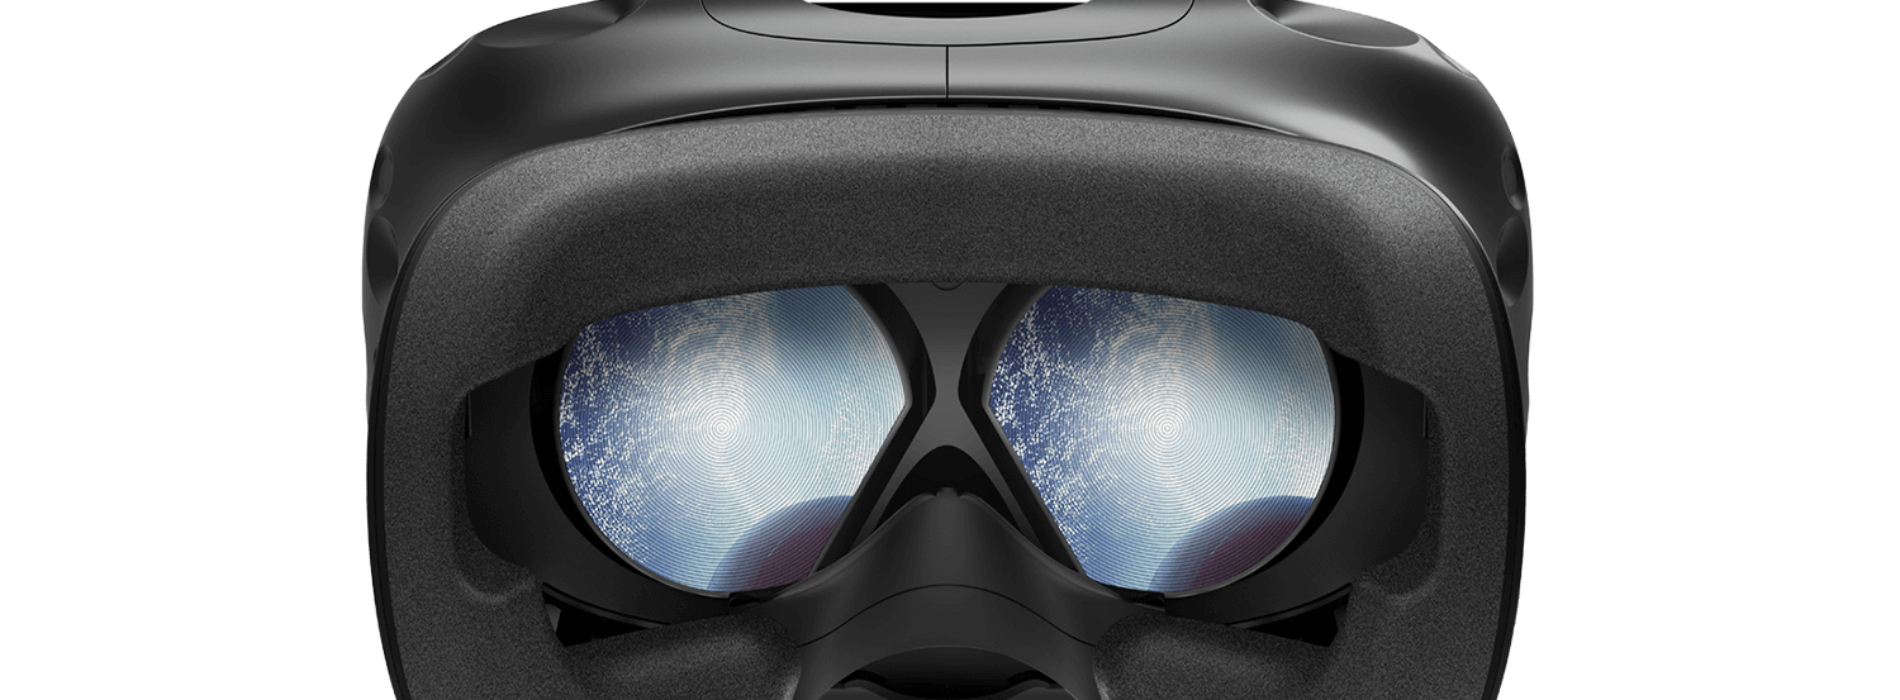 6 gafas VR que no son las PlayStation VR